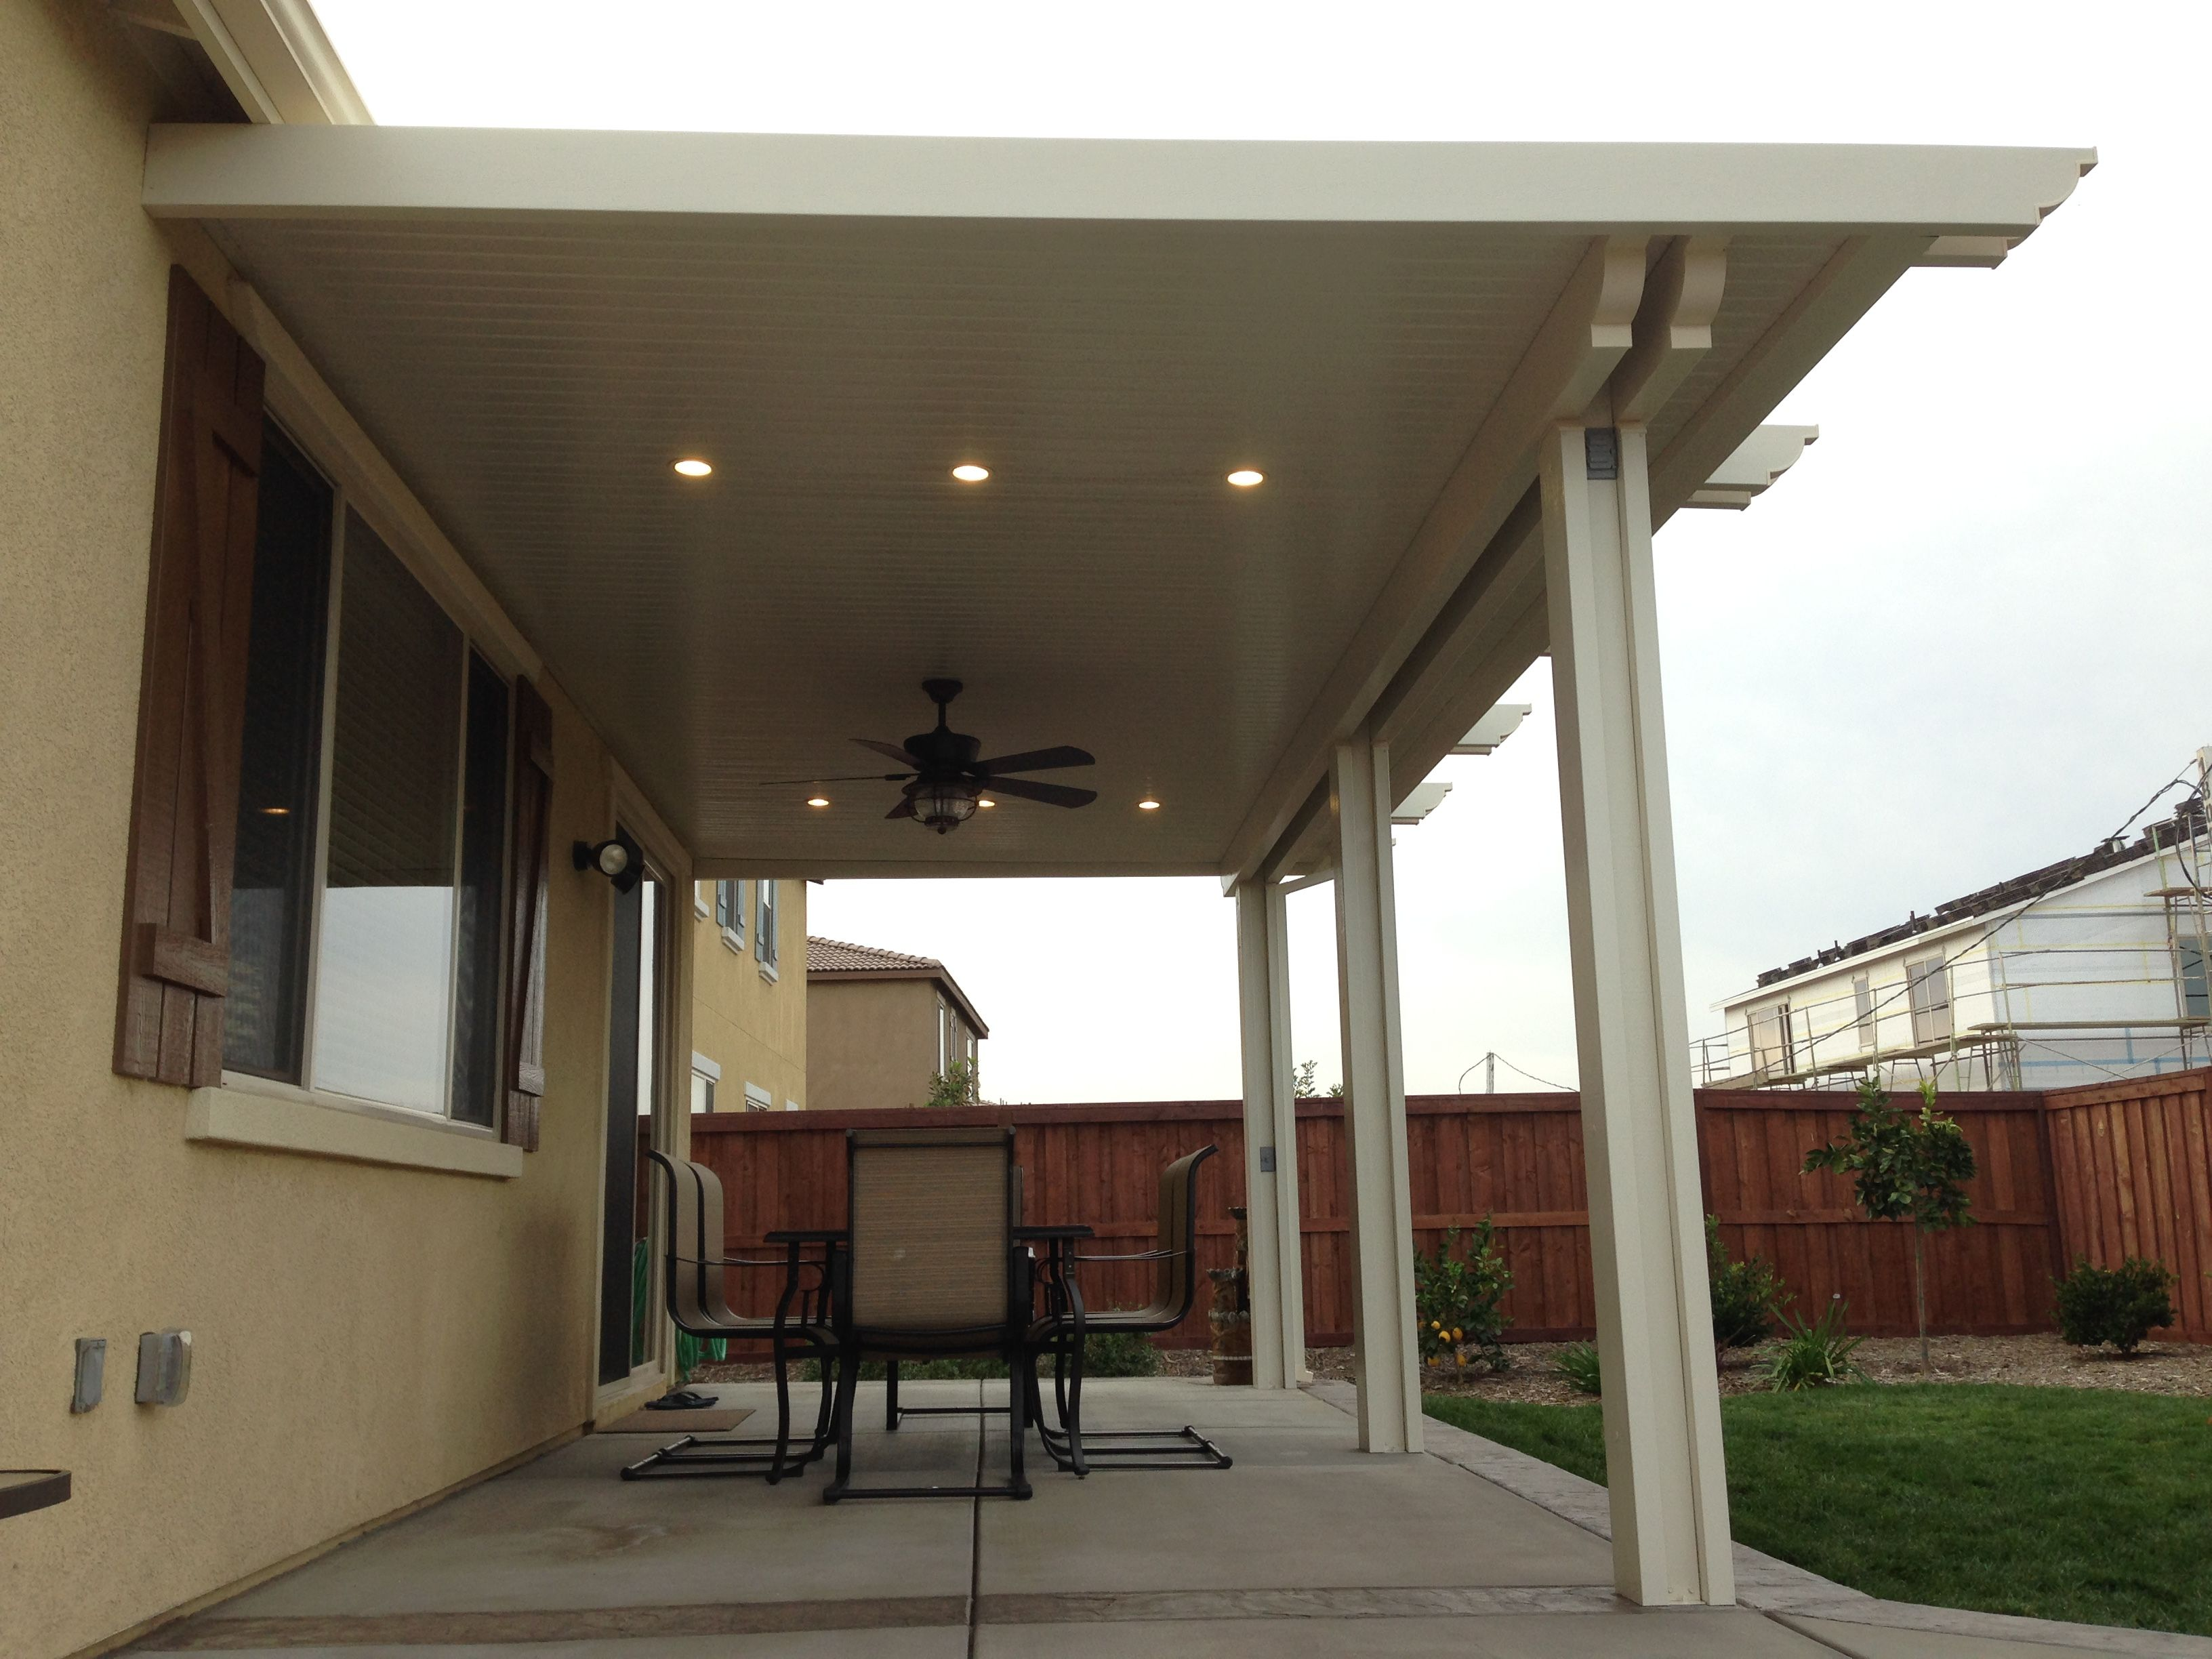 Alumawood patio cover with fan and two lightstrips canned lights